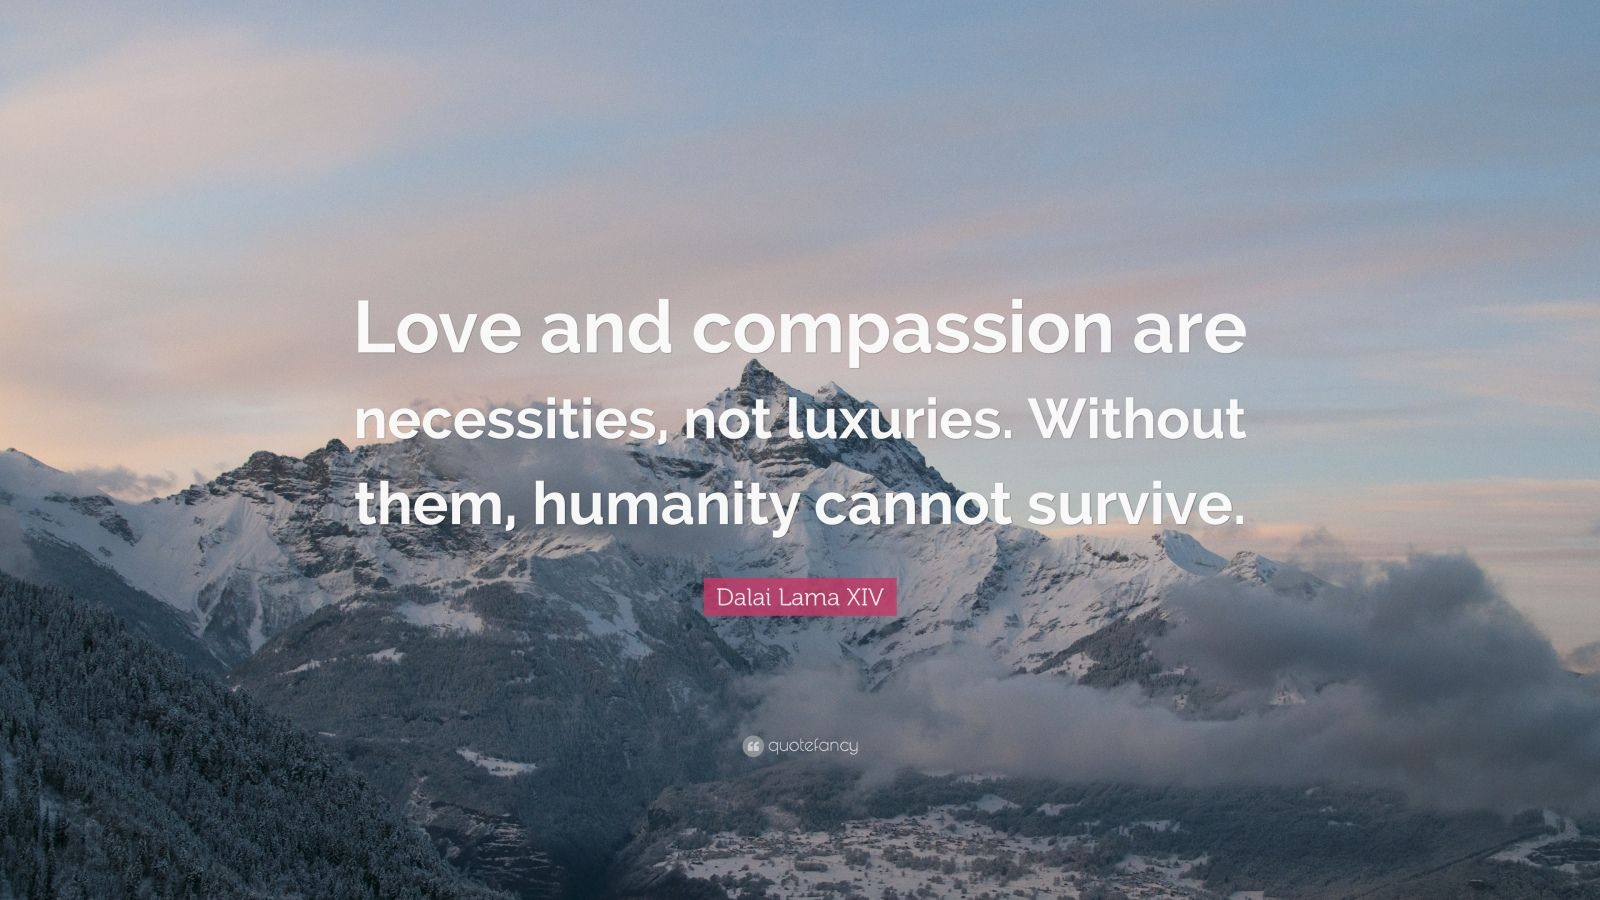 Socrates Wallpaper Quotes Dalai Lama Xiv Quote Love And Compassion Are Necessities